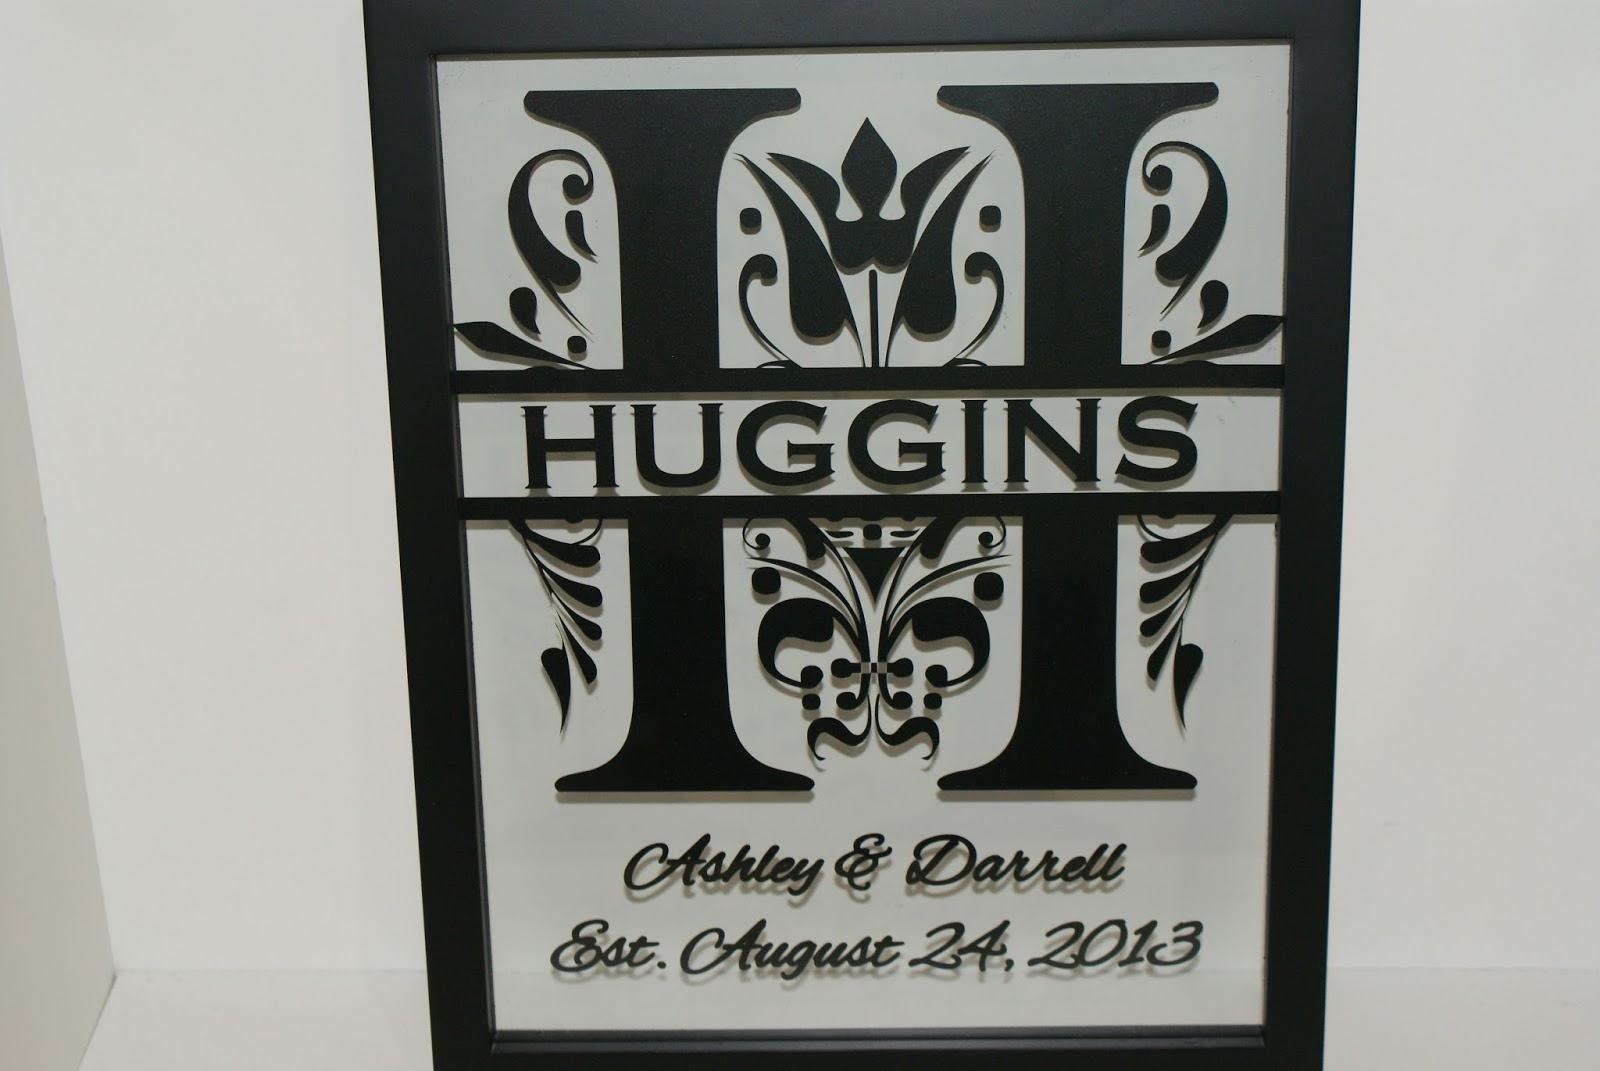 the final choice is the 12 x 12 blackbrown frame with your choice of background colour